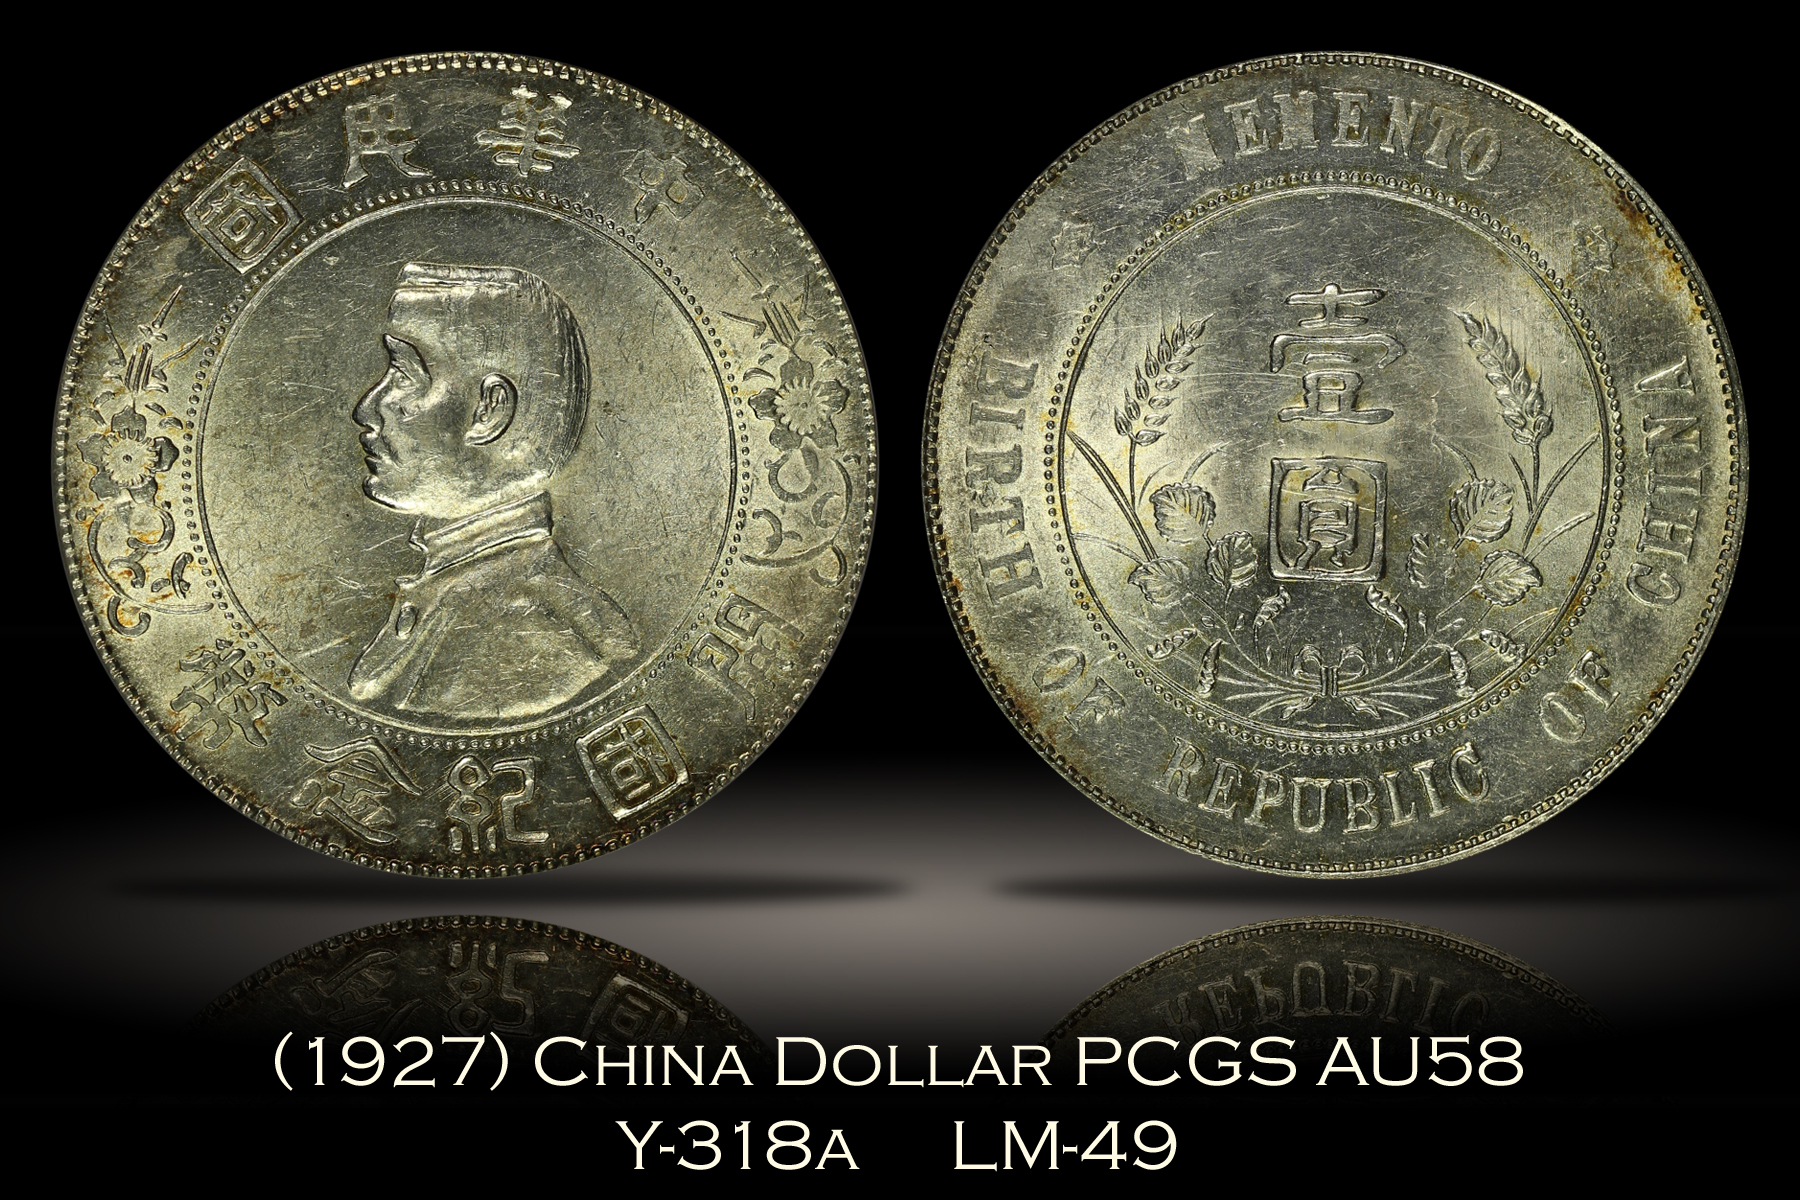 1927 China Republic Memento Dollar Y-318a LM-49 PCGS AU58